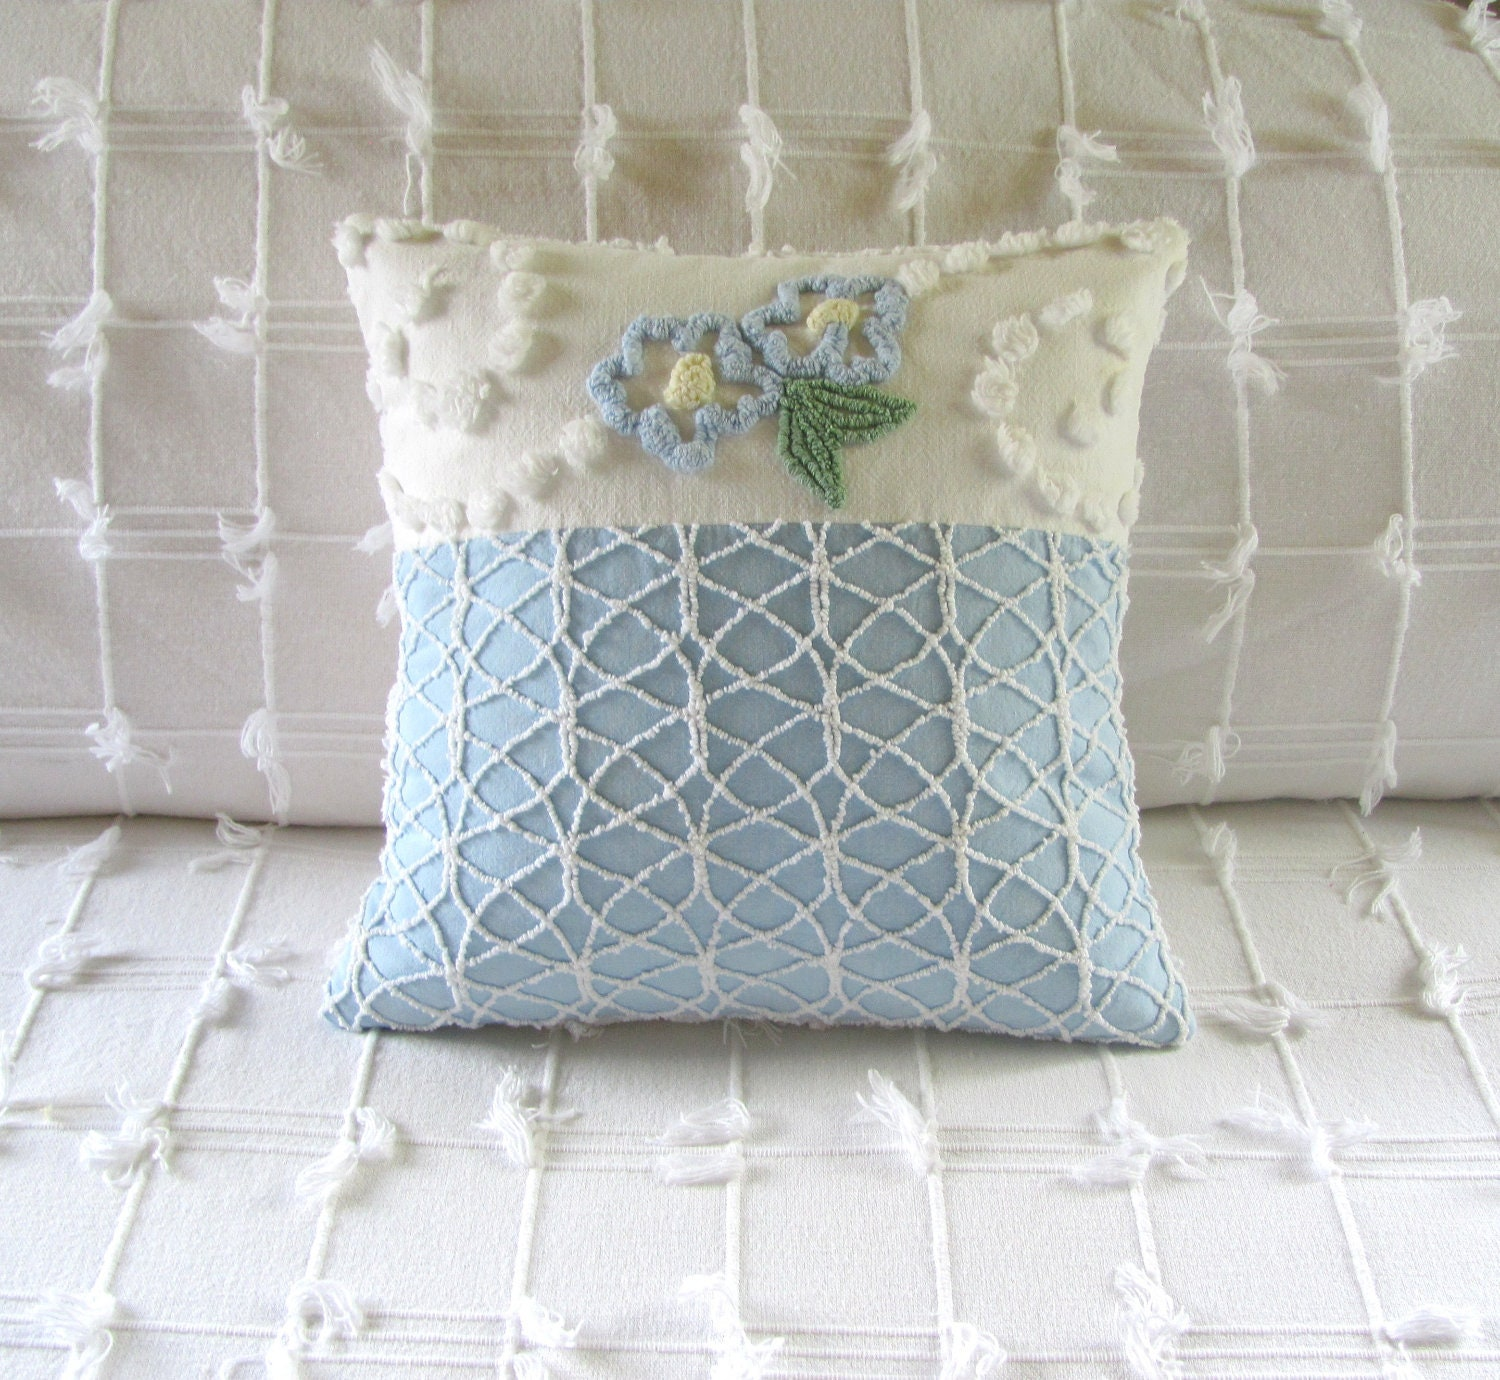 FORGET ME NOT handmade vintage chenille pillow cover 14 X 14 floral cushion cover